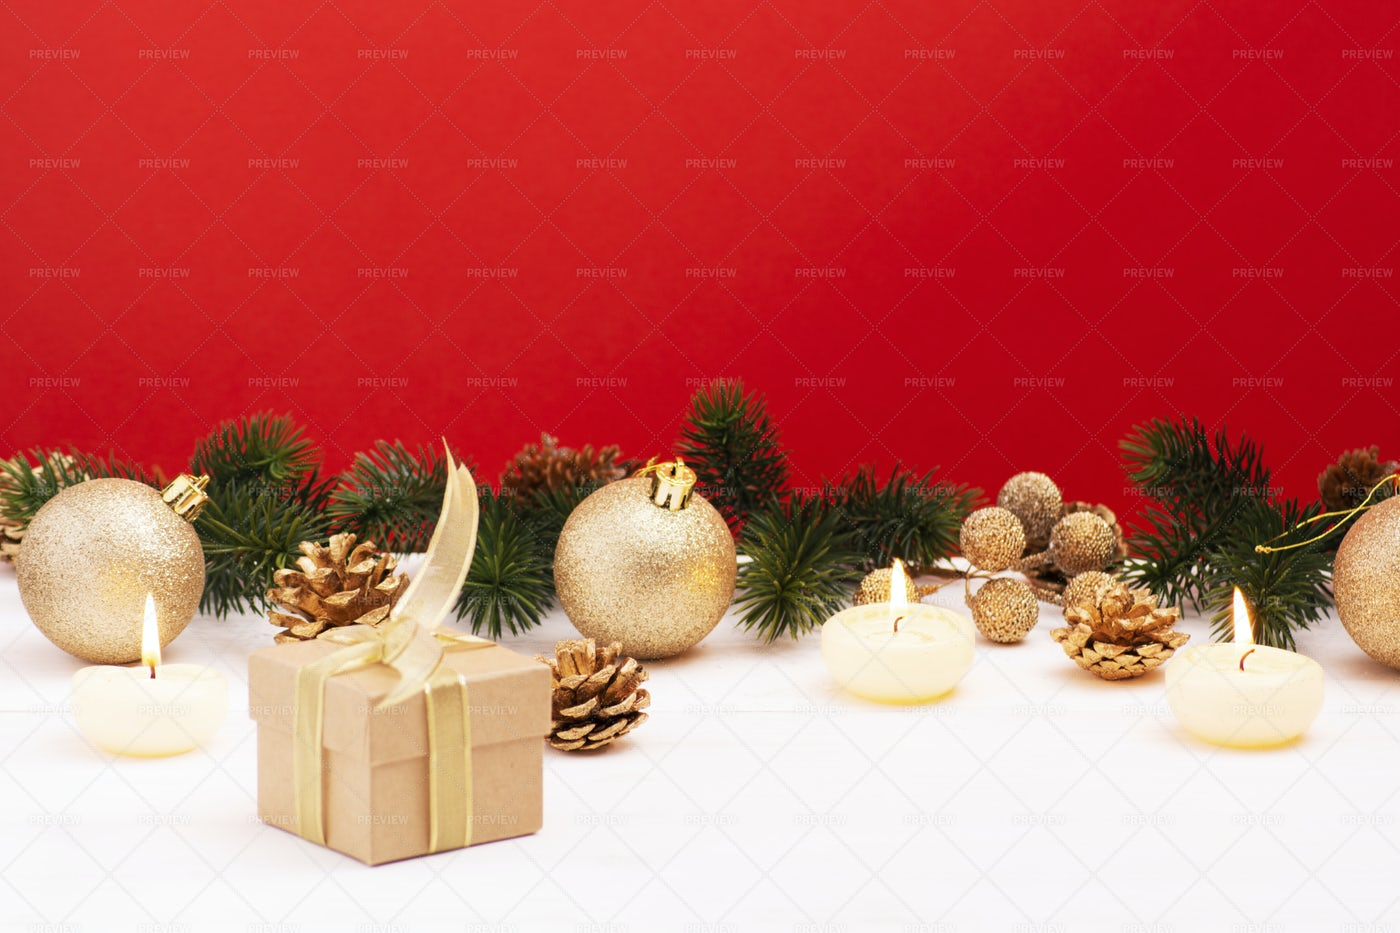 Christmas Composition On Red Background: Stock Photos